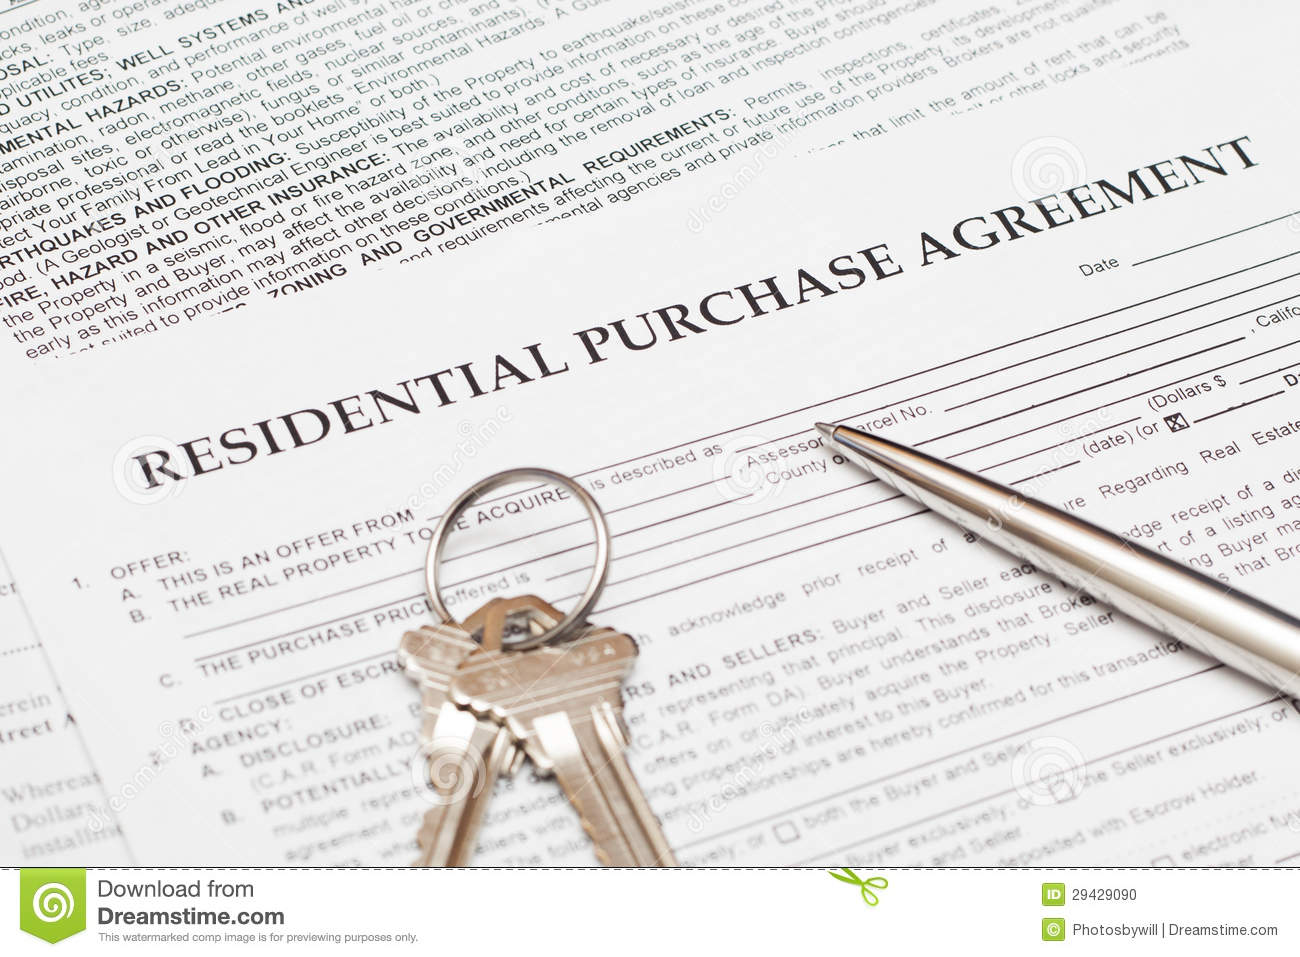 Residential Purchase Agreement Stock Photo Image Of Finances